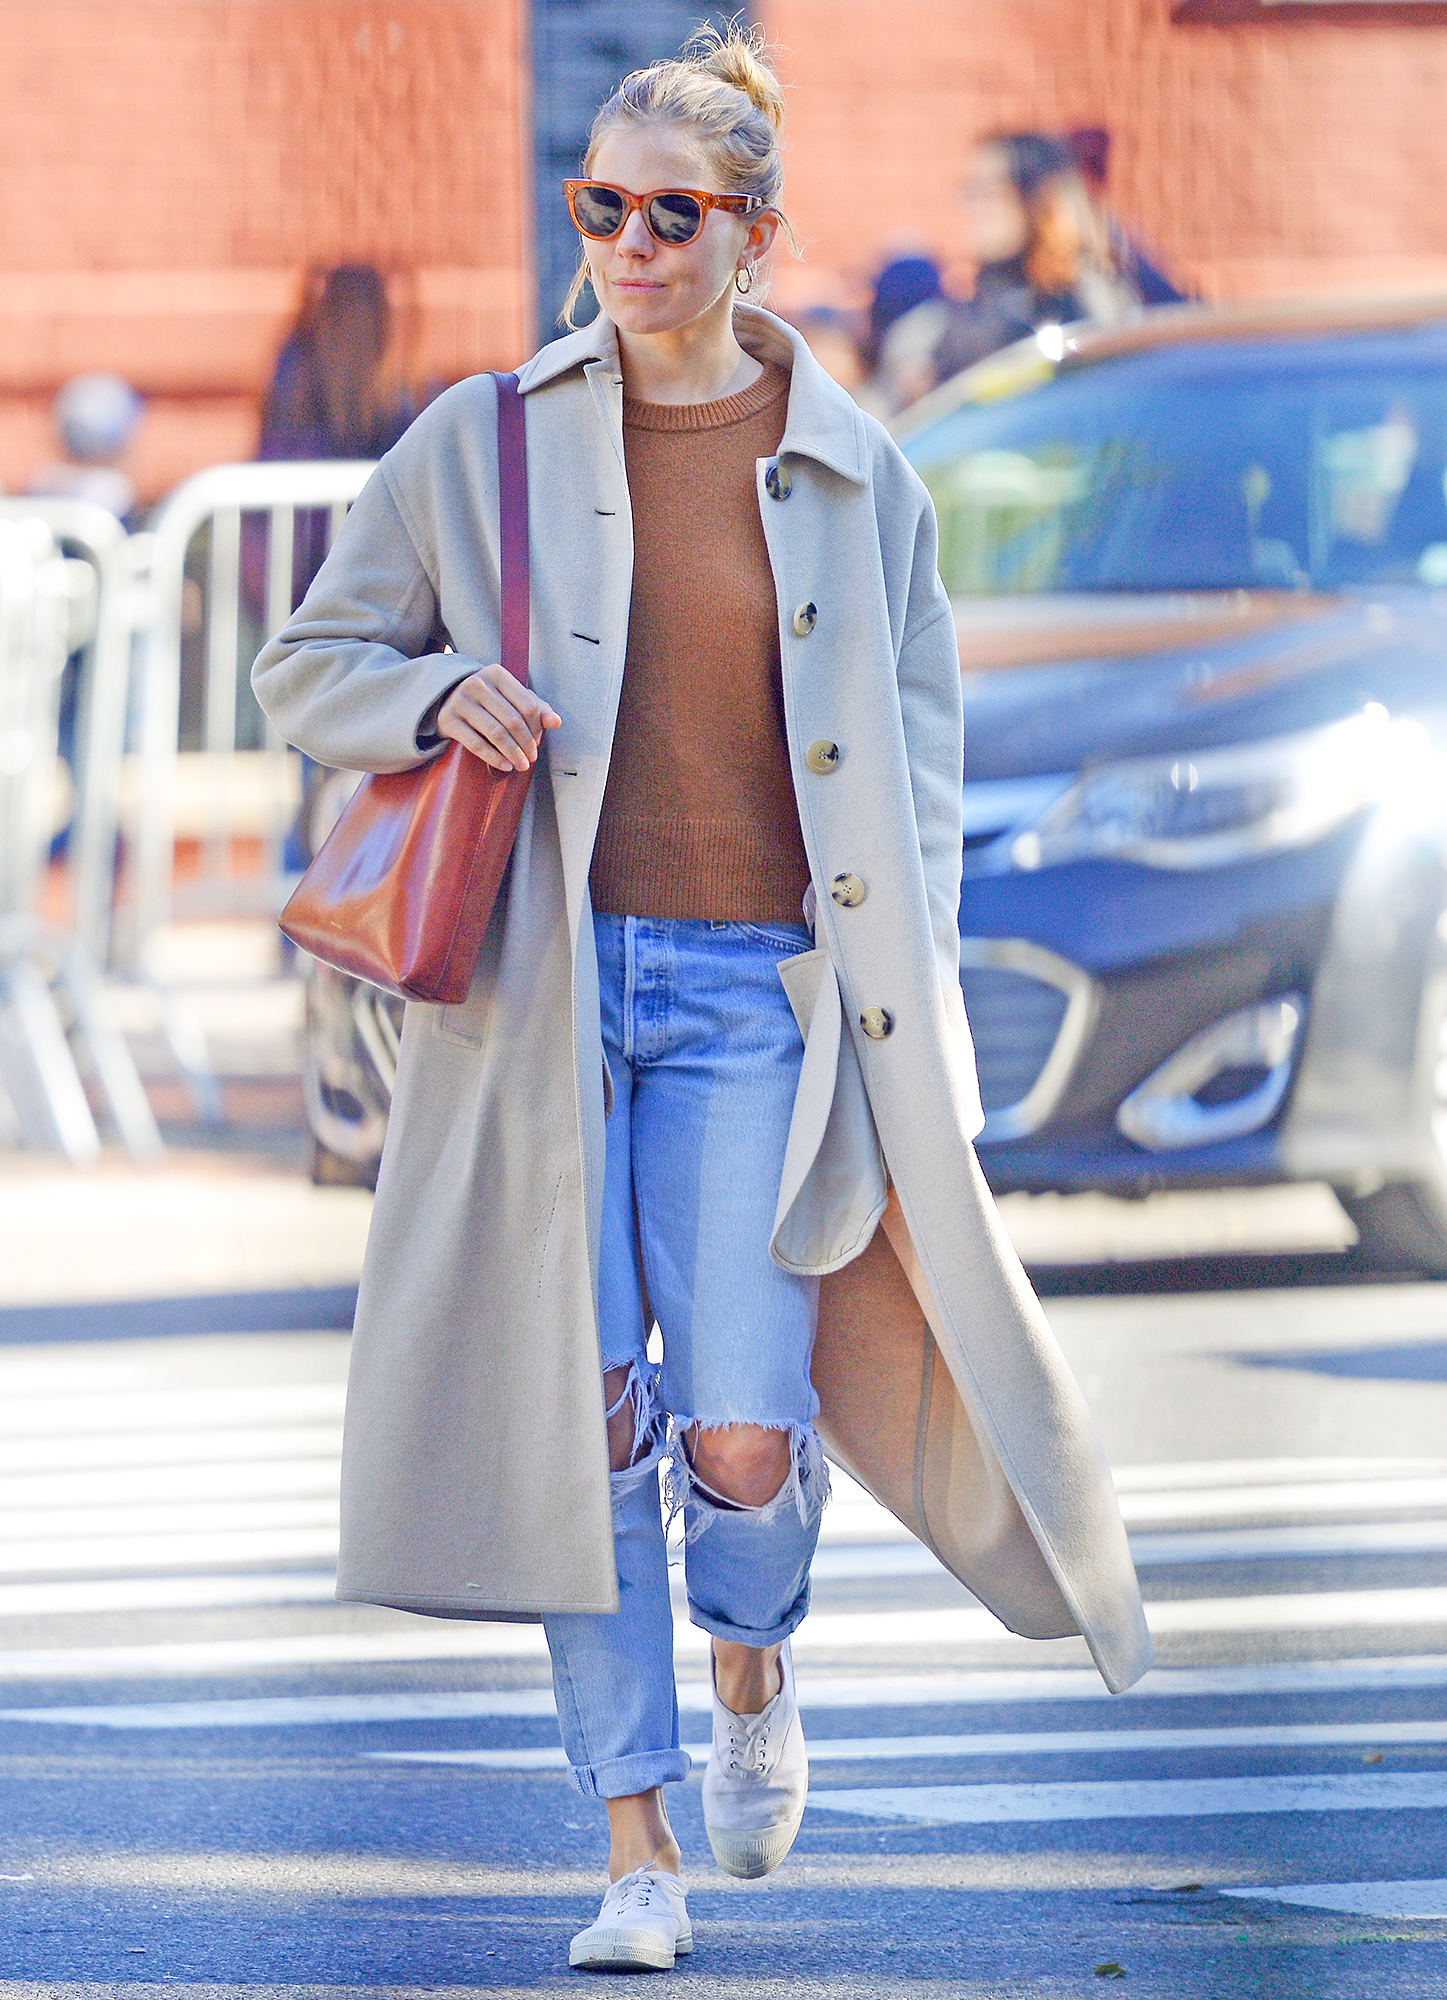 EXCLUSIVE: Sienna Miller wears a pumpkin colored ribbed top, beige wool coat, ripped denim and white sneakers while out and about in New York City